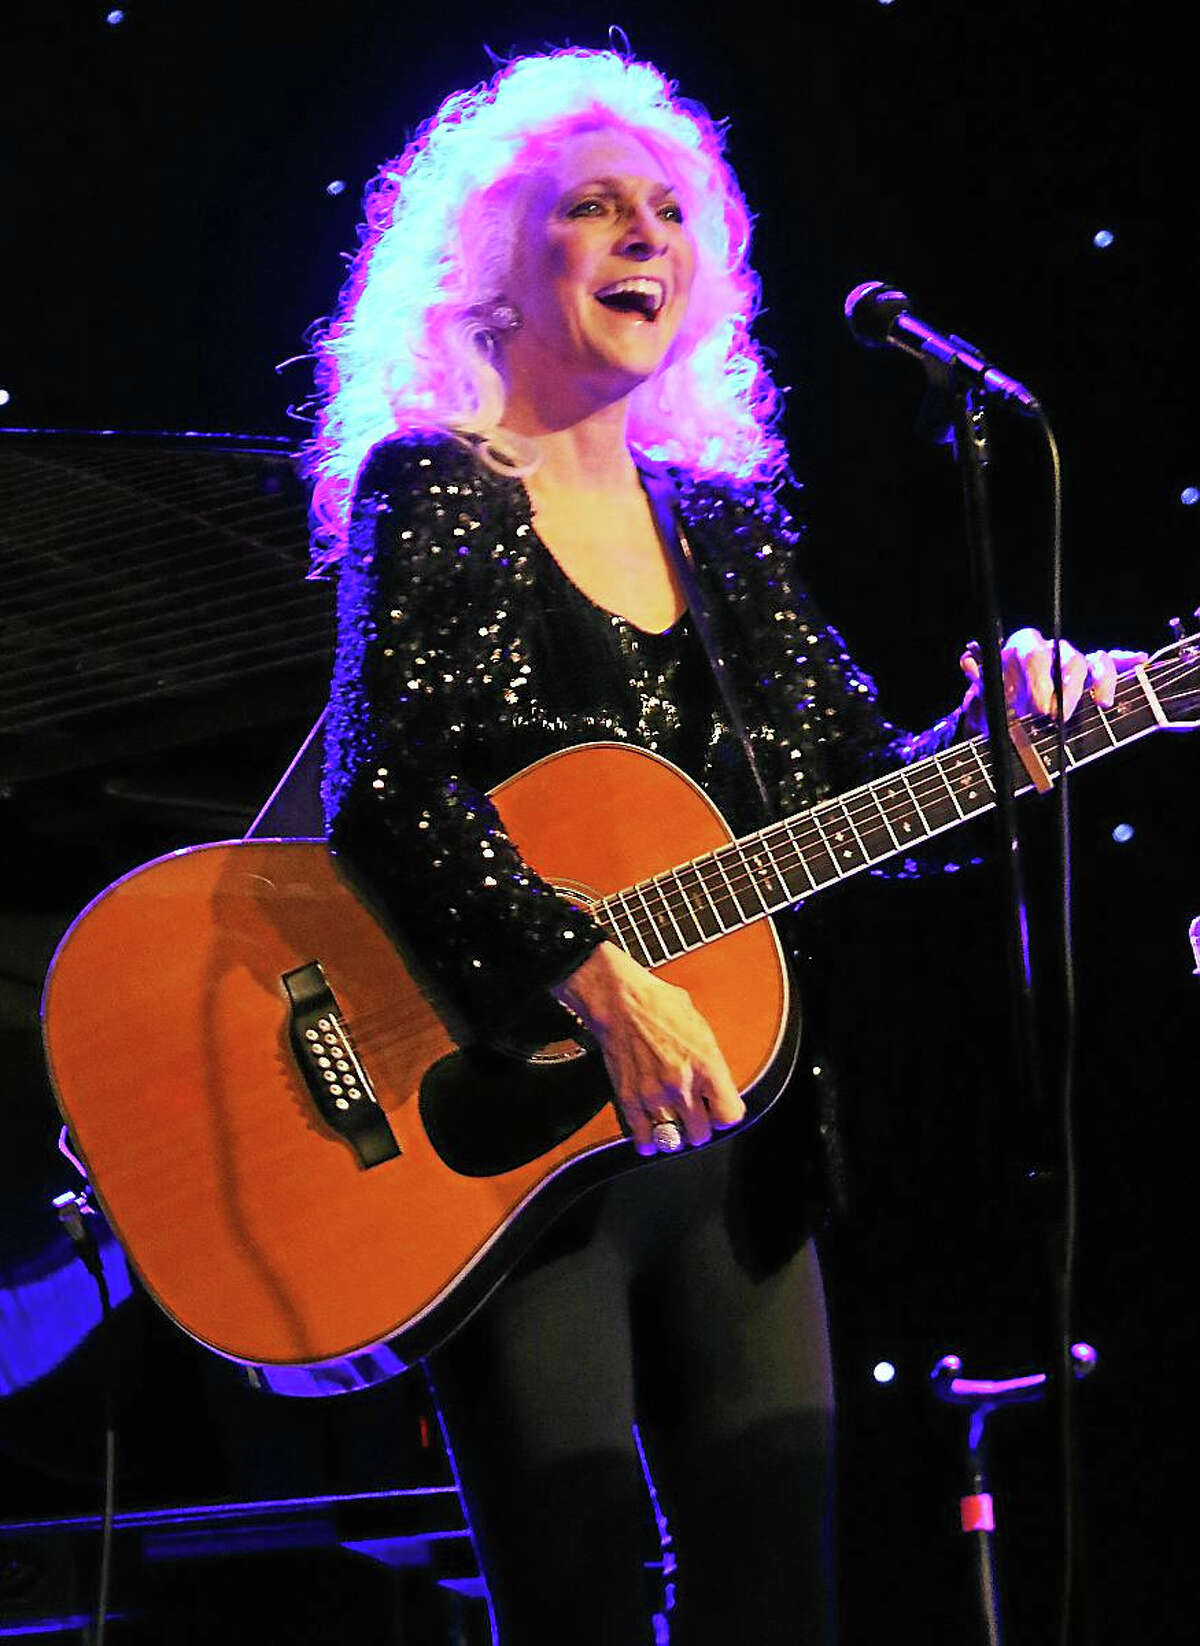 """Photo by John AtashianSinger, songwriter, guitarist and social activist Judy Collins is shown having fun with her fans during her performance at the Infinity Music Hall & Bistro in Hartford on Thursday Nov. 27. Collins' debut album """"A Maid of Constant Sorrow"""" was released in 1961, but it was her cover of Joni Mitchell's """"Both Sides, Now"""", the lead single from her 1967 album """"Wildflowers"""", that gave Collins worldwide attention. She entertained the capacity crowd with conversation and sa sampling of her biggest hits. Judy also played a sold-out show at the Infinity Music Hall & Bistro in Norfolk on Saturday Nov. 28. For future show listings, go to www.infinityhall.com"""